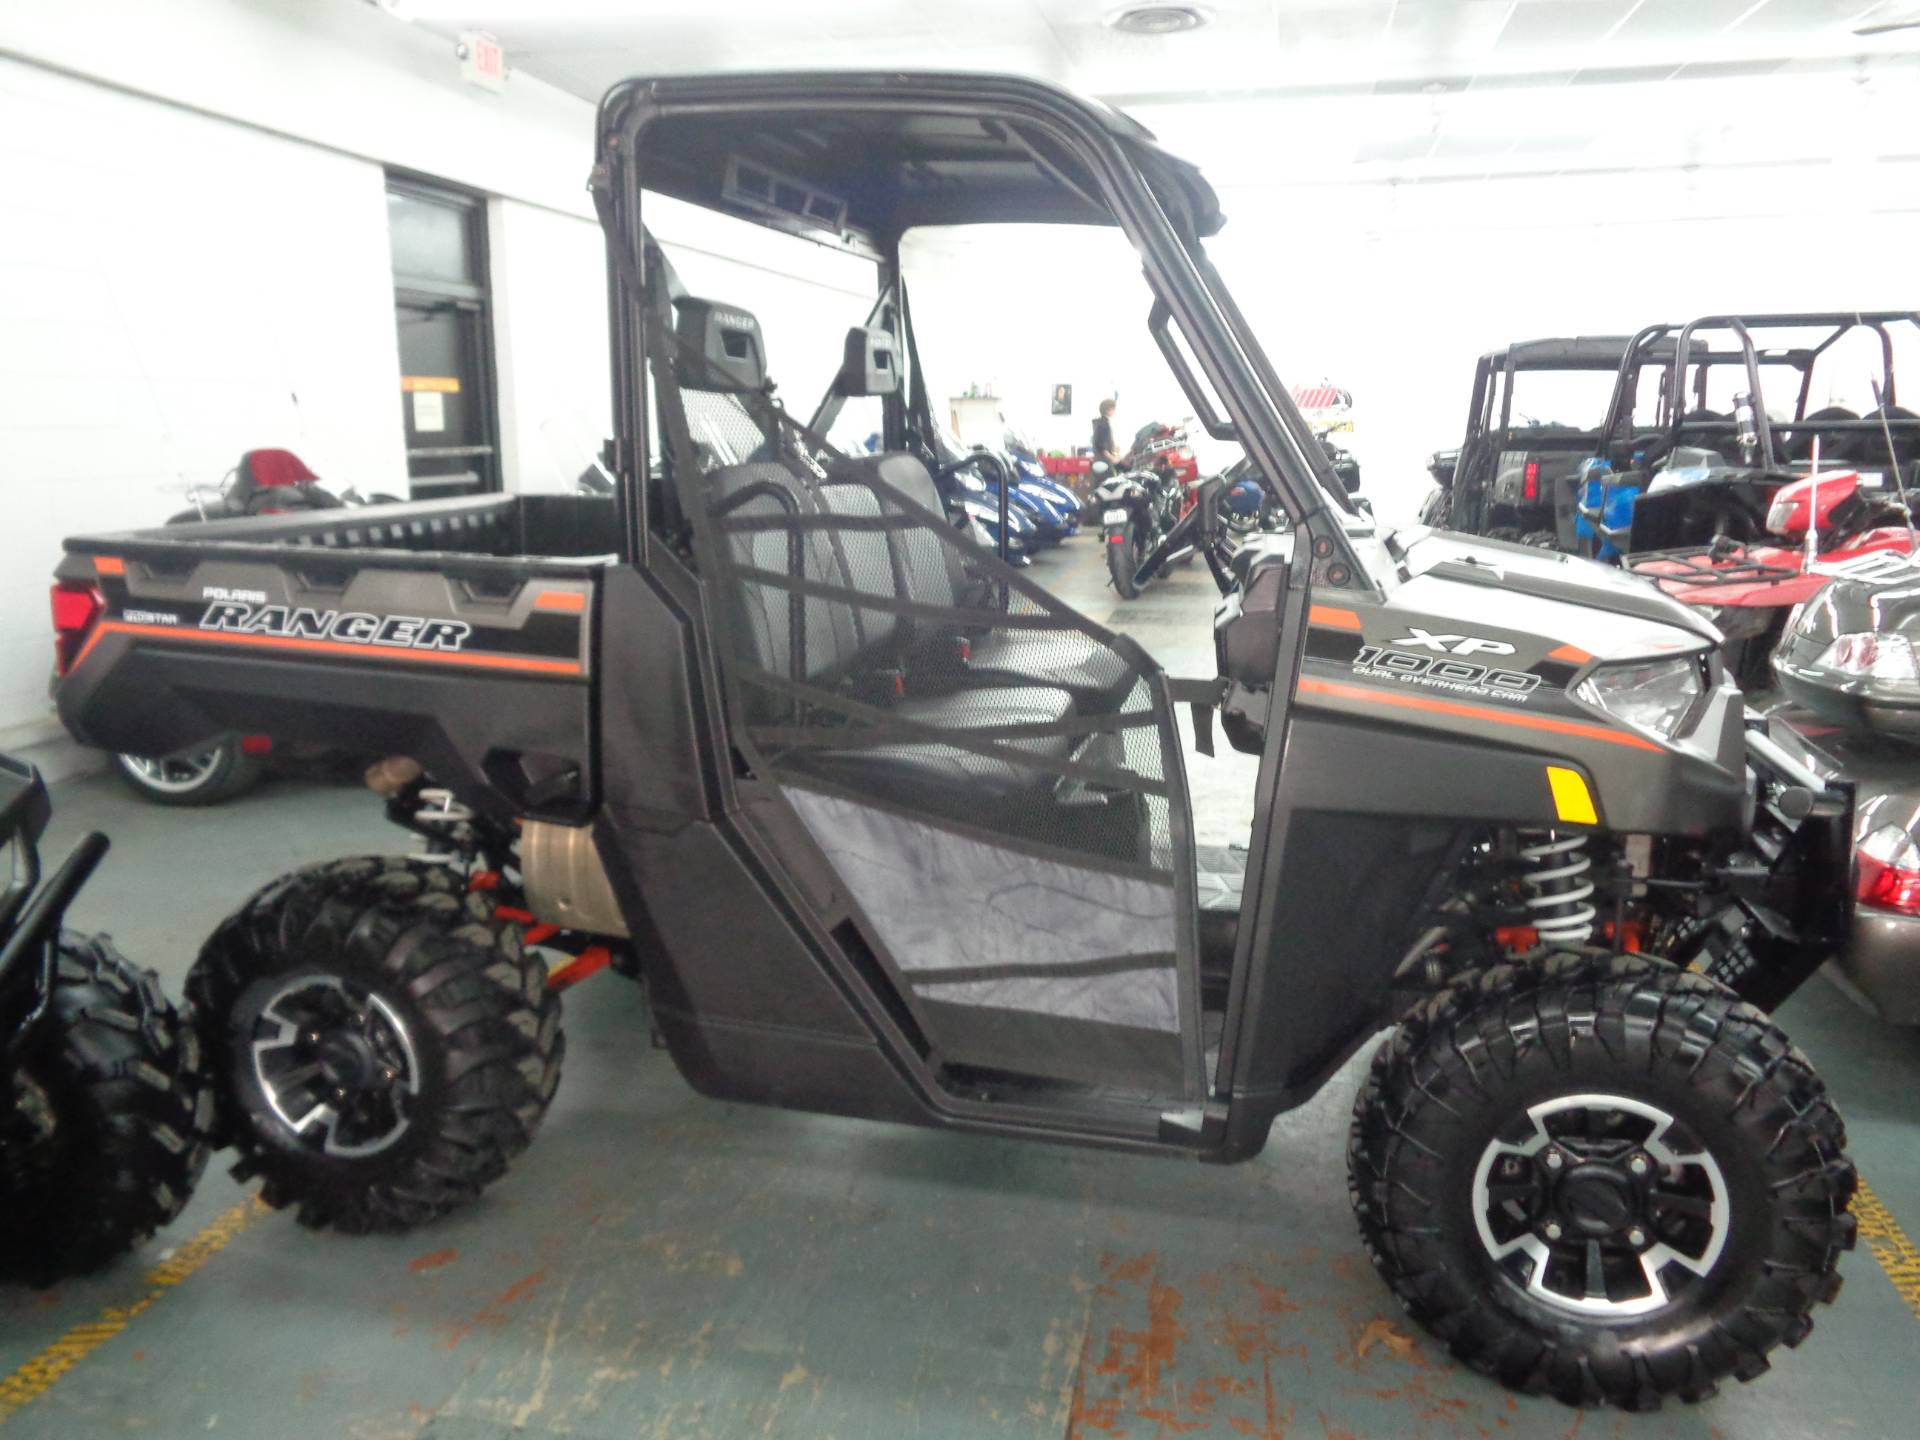 2018 Polaris Ranger XP 1000 EPS in Tulsa, Oklahoma - Photo 1